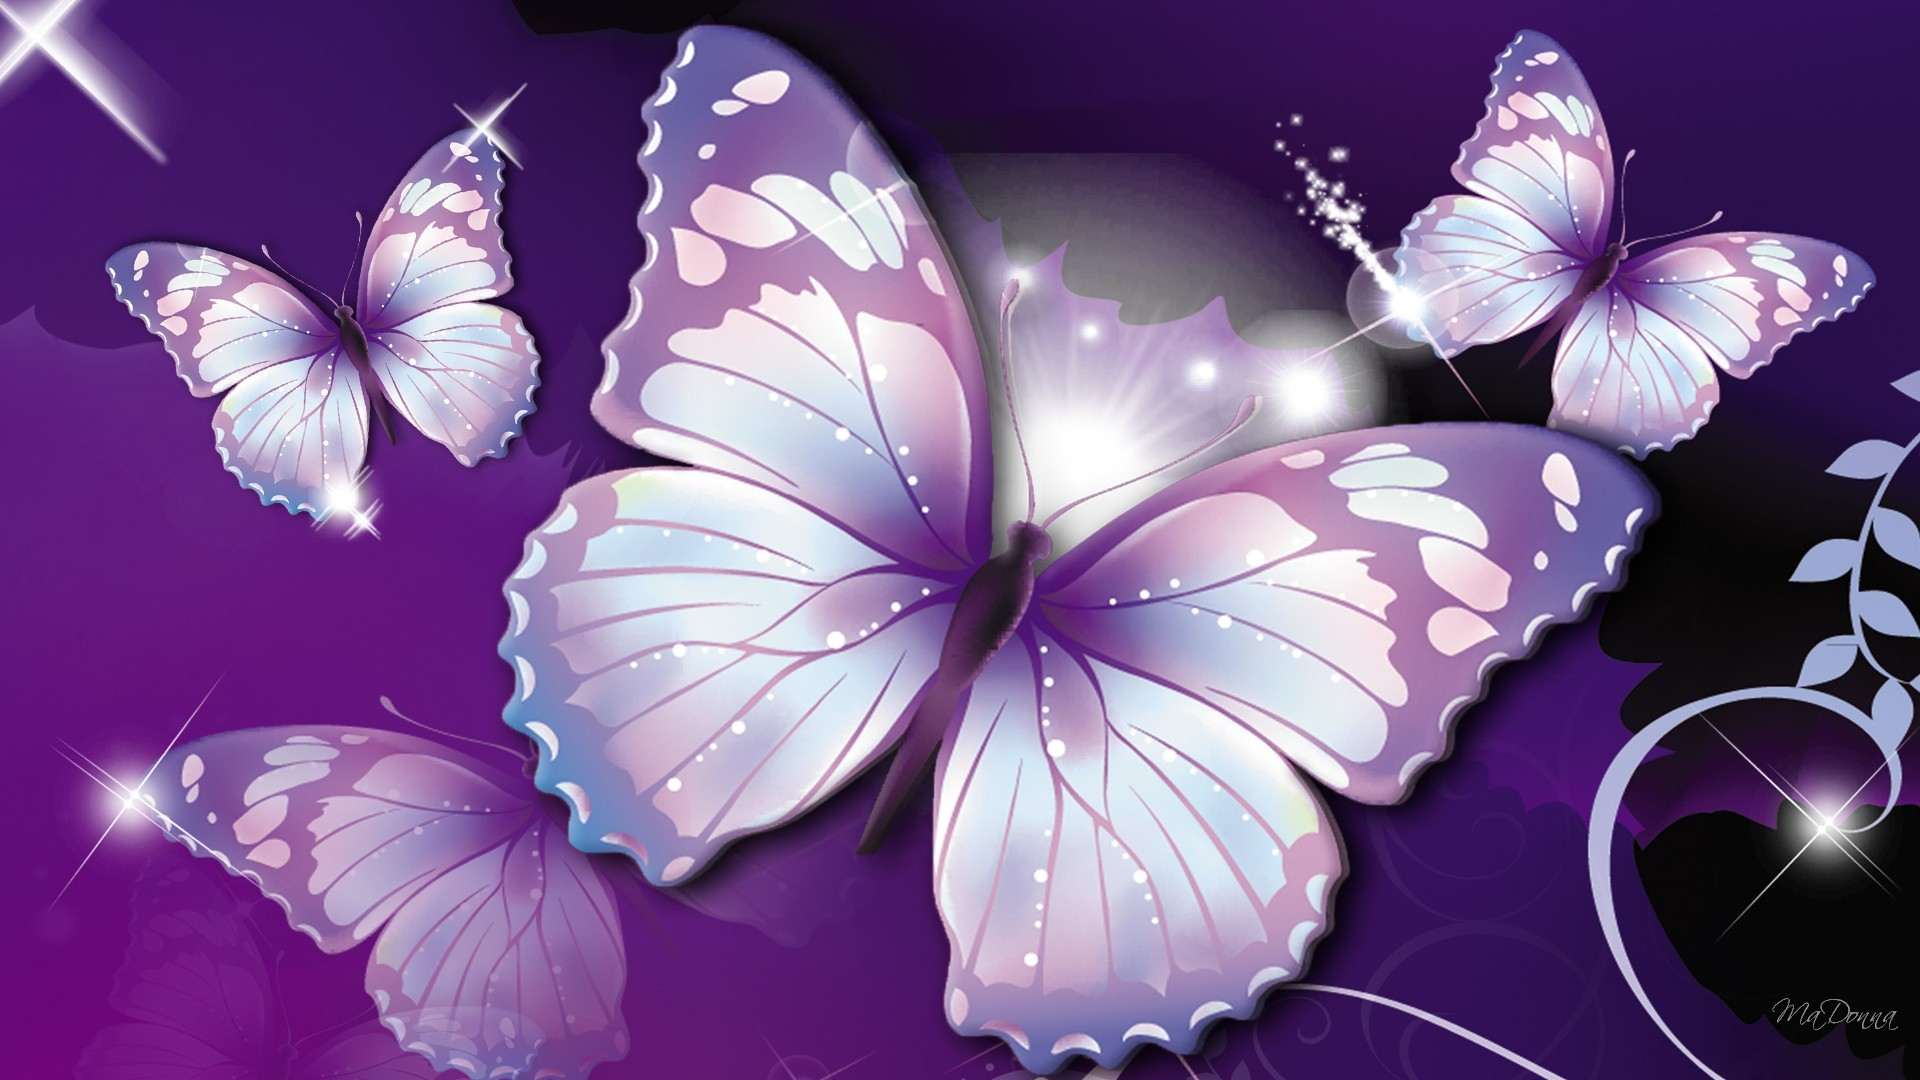 1920x1080 - Pretty Butterfly Backgrounds 20